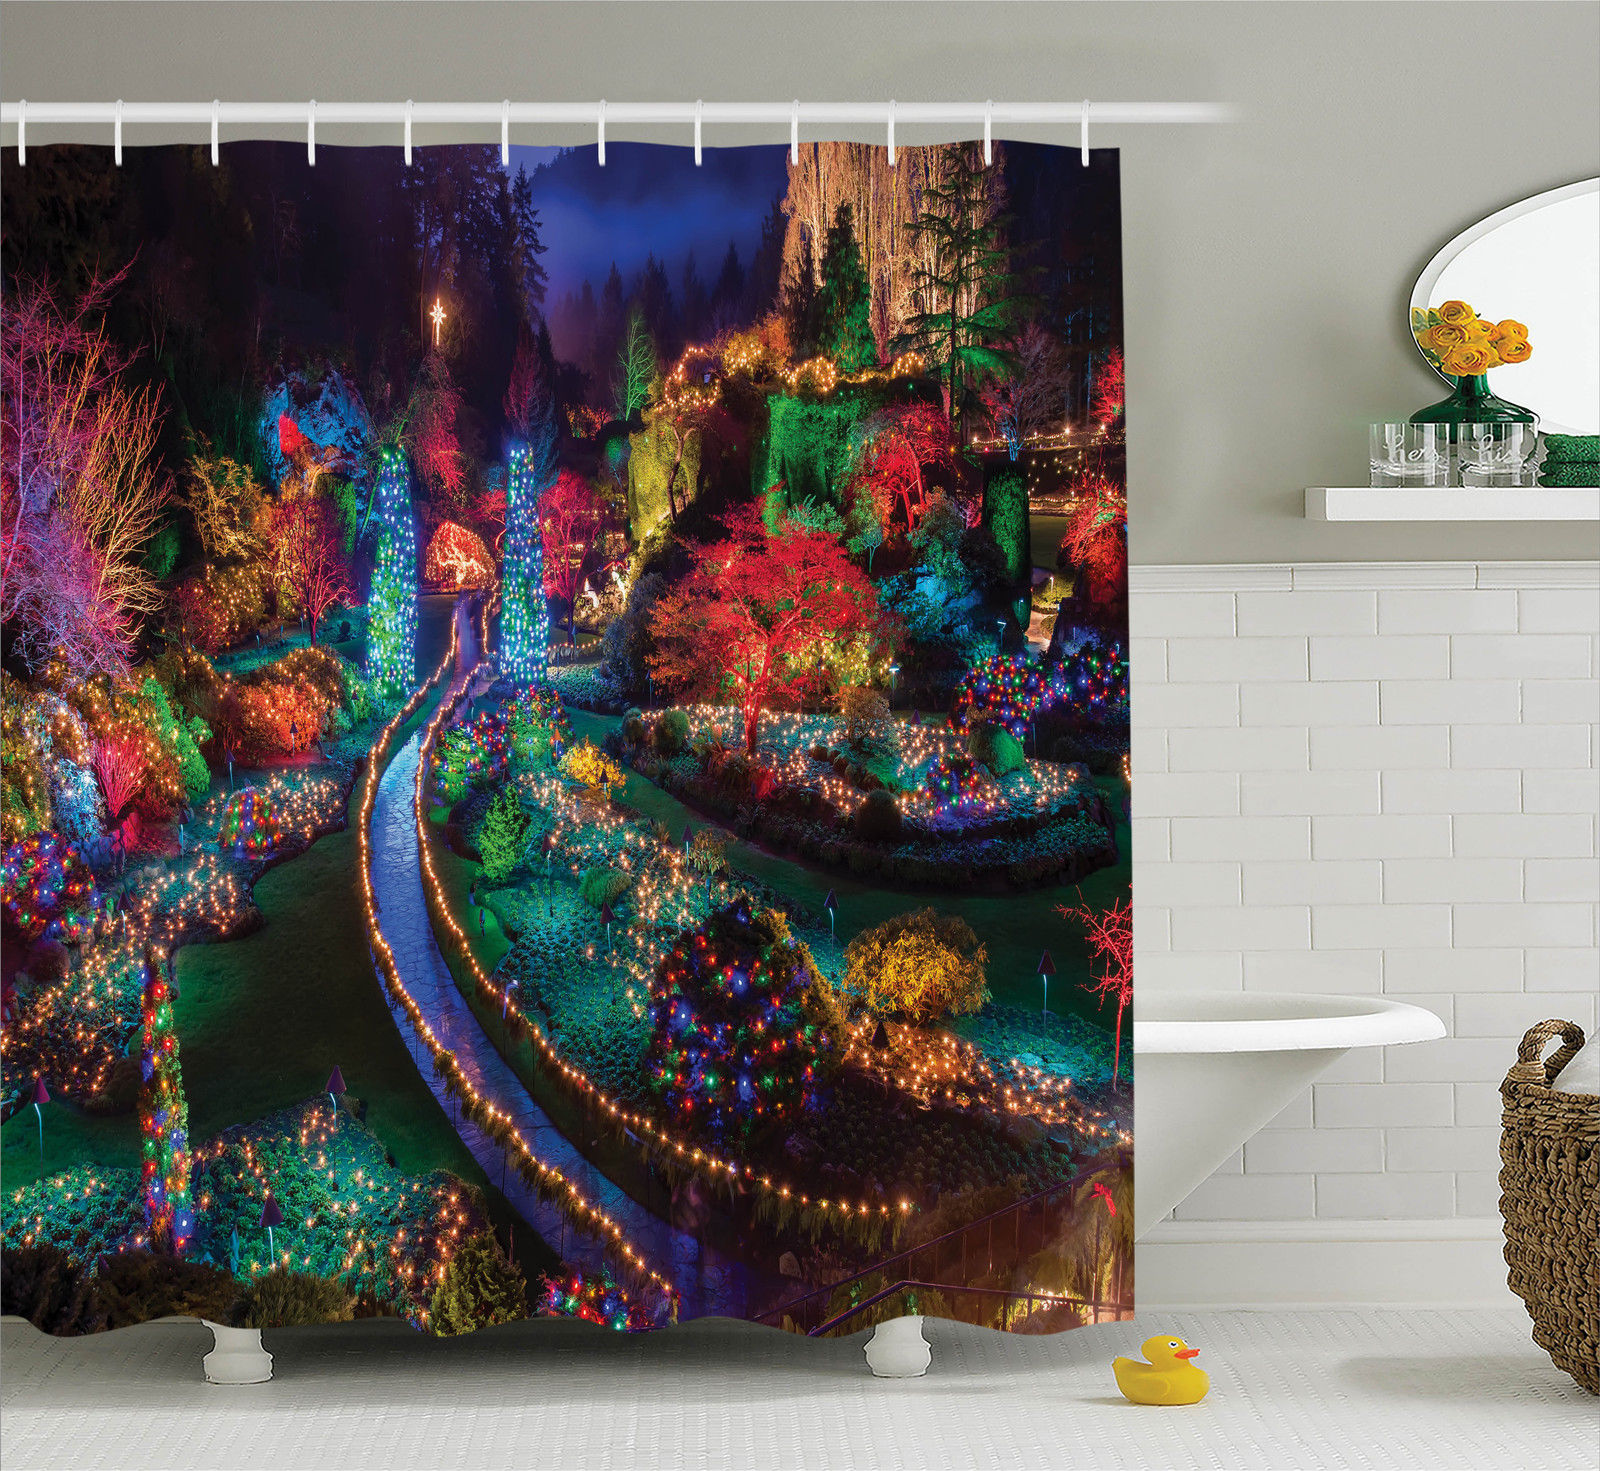 Country Home Decor Shower Curtain Set, Colorful Christmas Light At Buchart, Gardens Celebrations Seasonal Nature Picture, Bathroom Accessories, 69W X 70L Inches, By Ambesonne